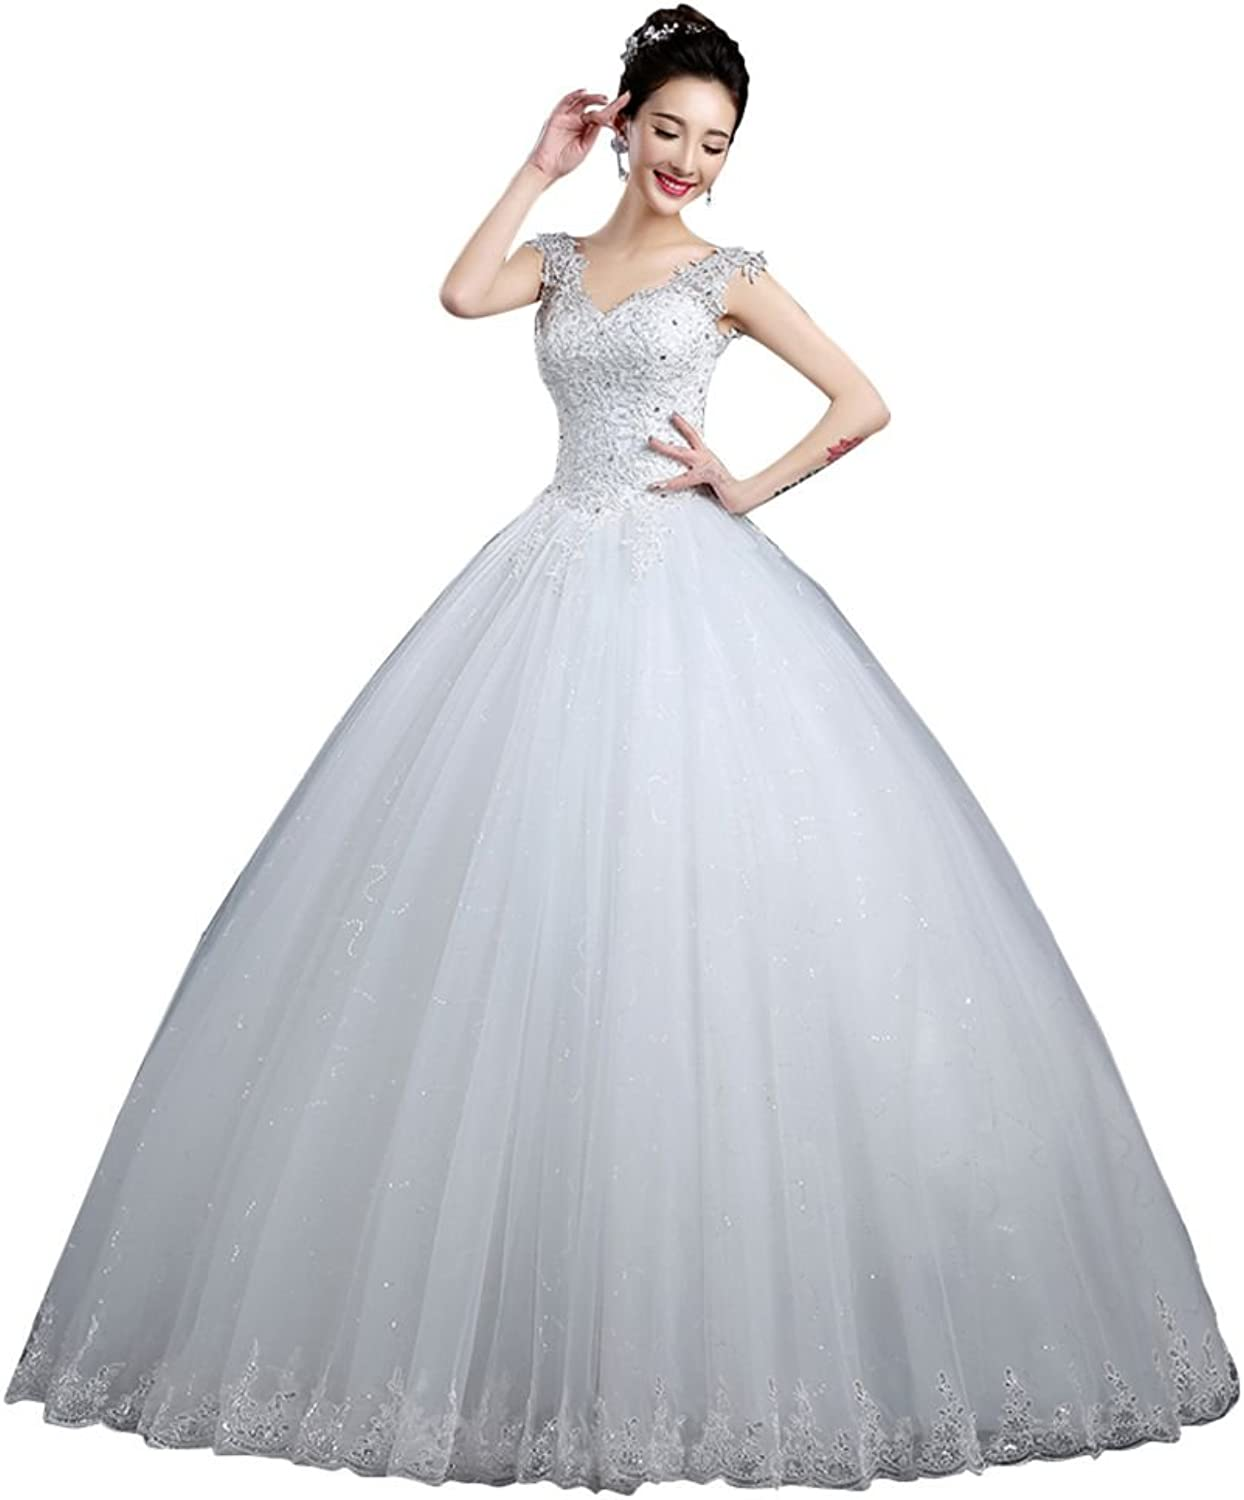 BeautyEmily VNeck Lace Floor Length Tulle Wedding Gowns for Bride